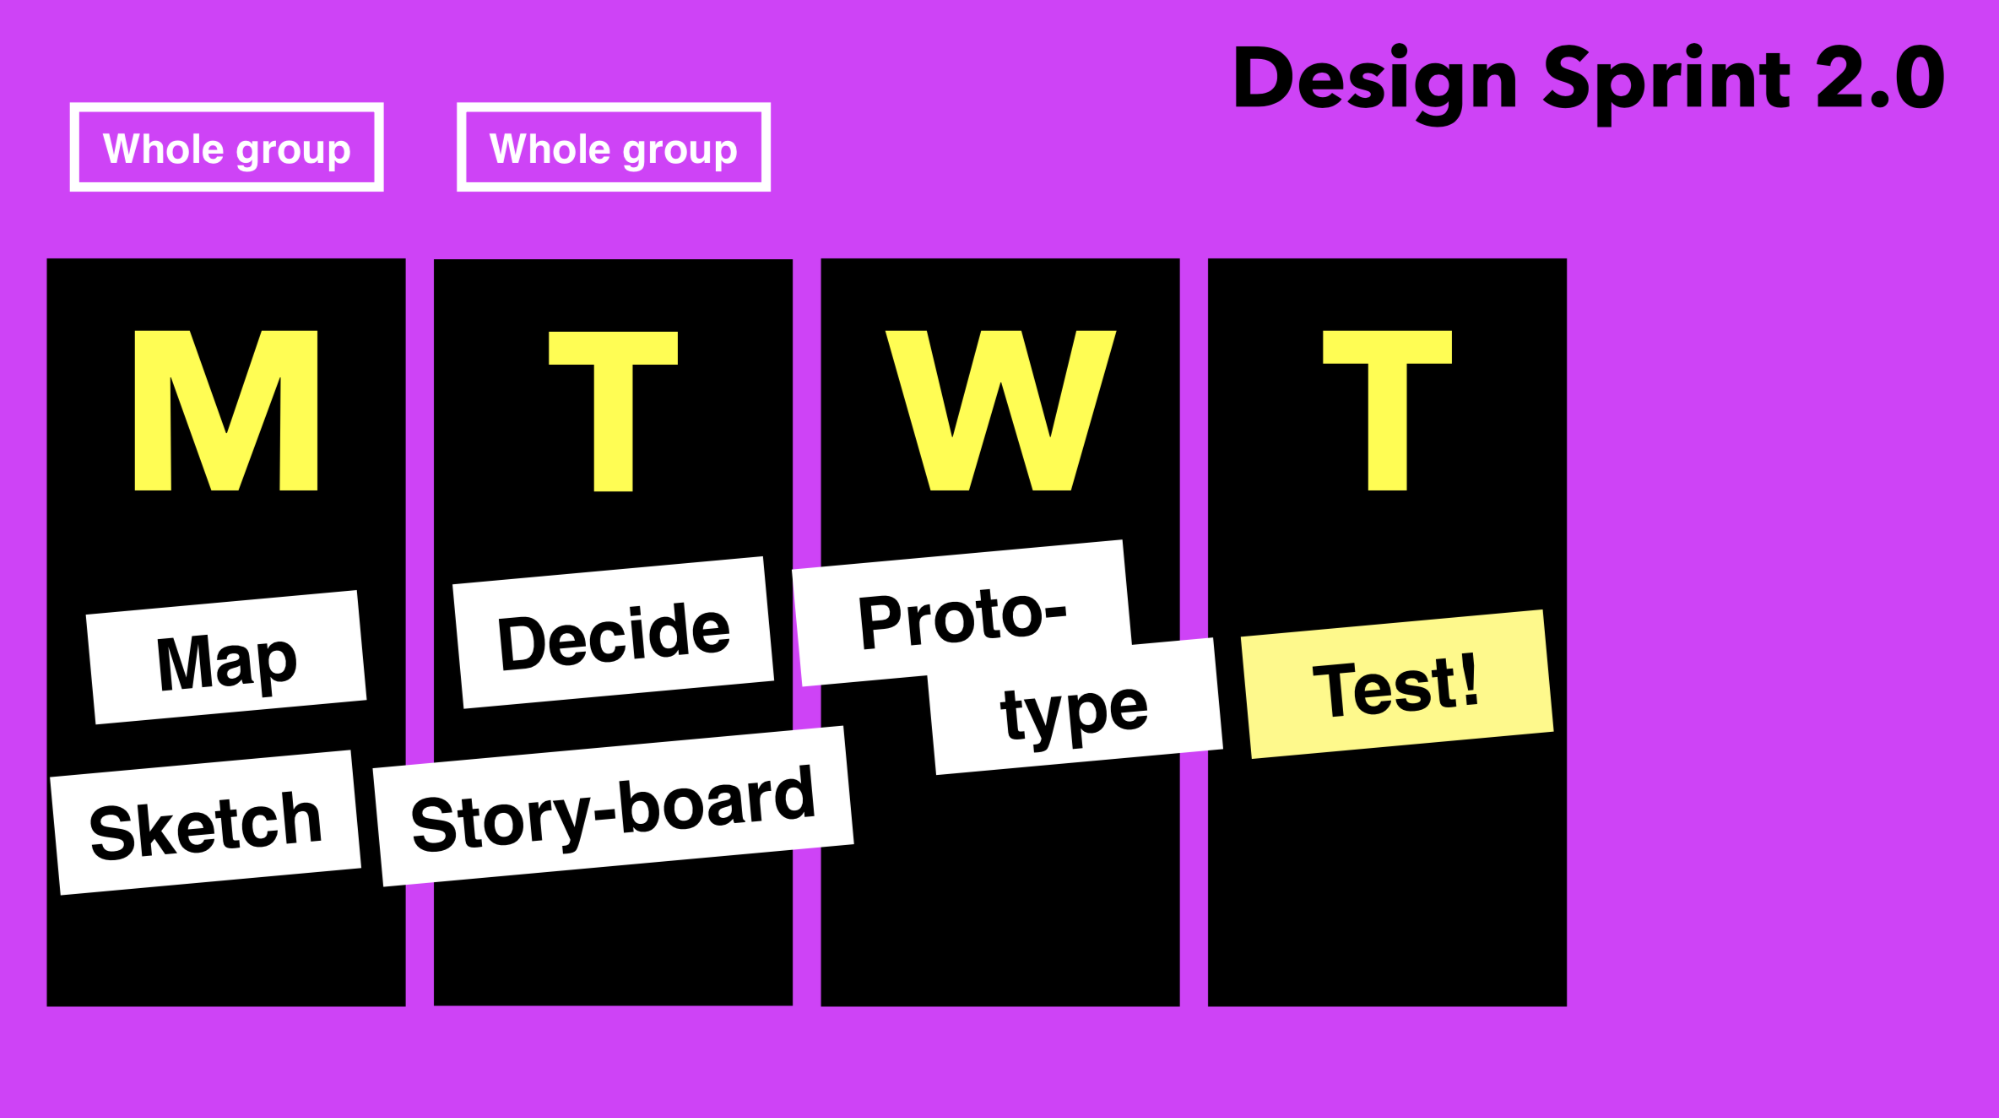 The Design Sprint 2 0: What is it and what does it look like